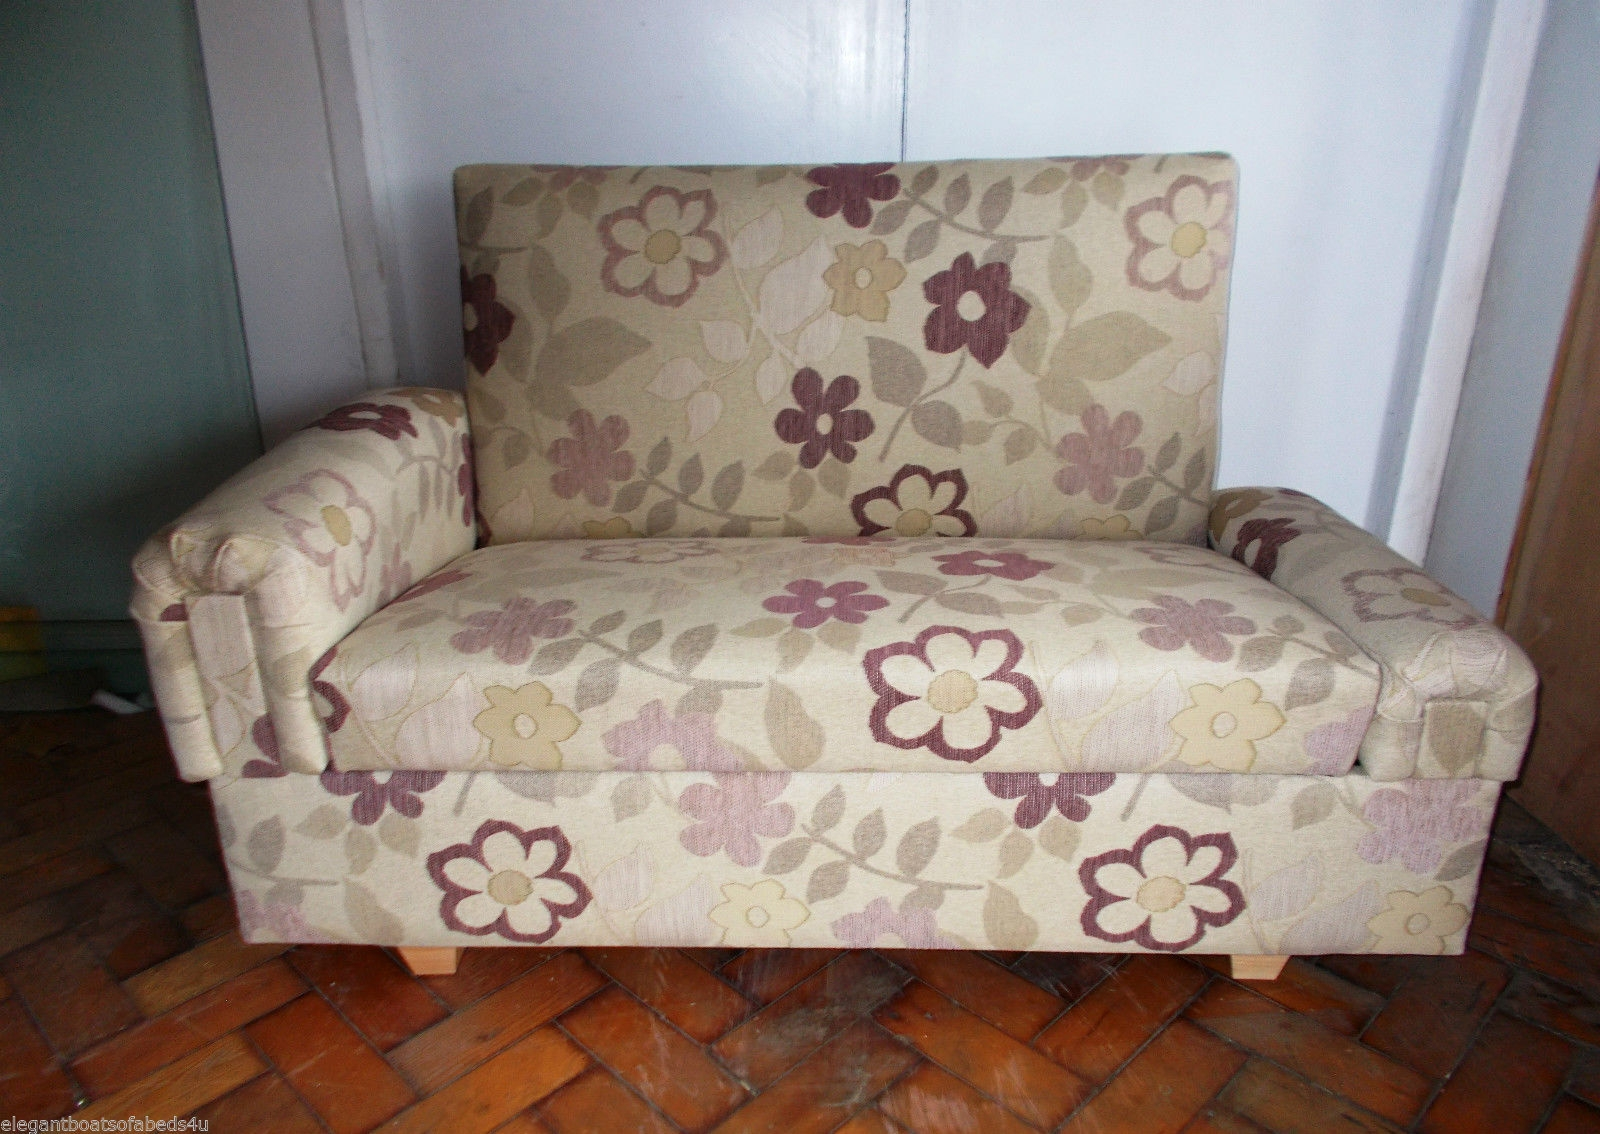 55 Floral Sofa 1000 Ideas About Floral Sofa On Pinterest Country For Chintz Sofa Beds (Image 2 of 15)